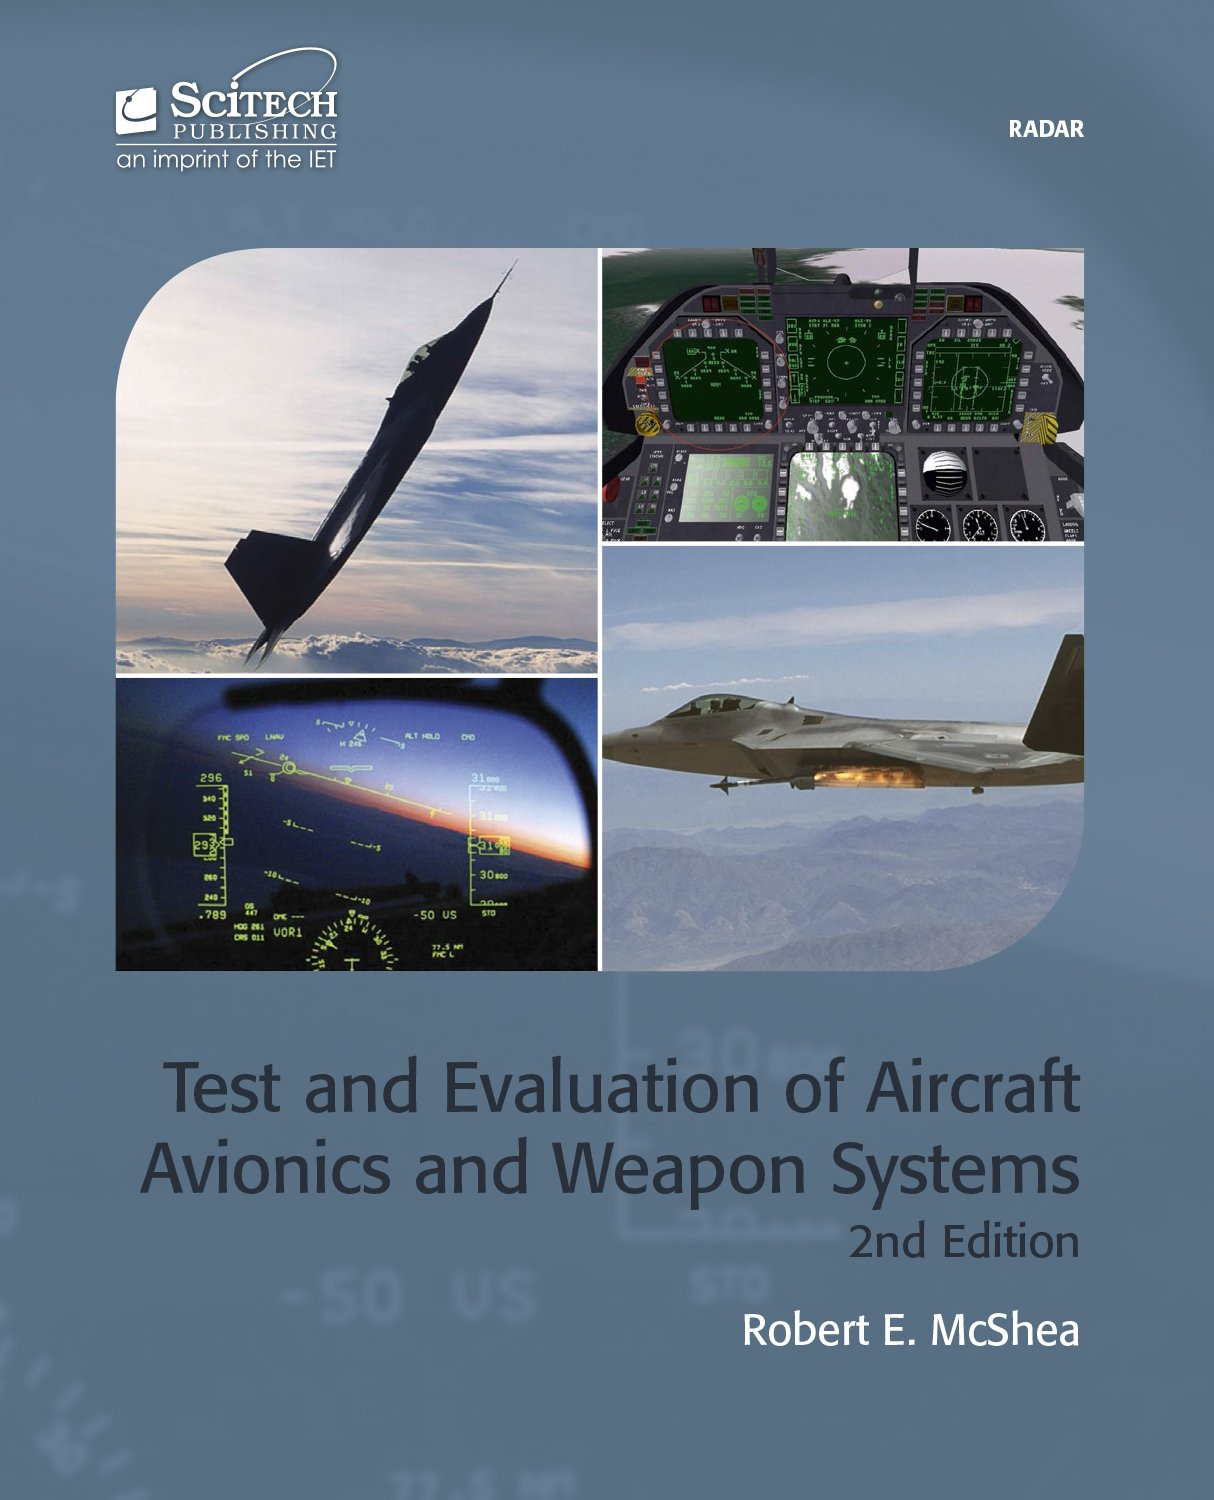 Test & Evaluation of Aircraft Avionics & Weapon Systems